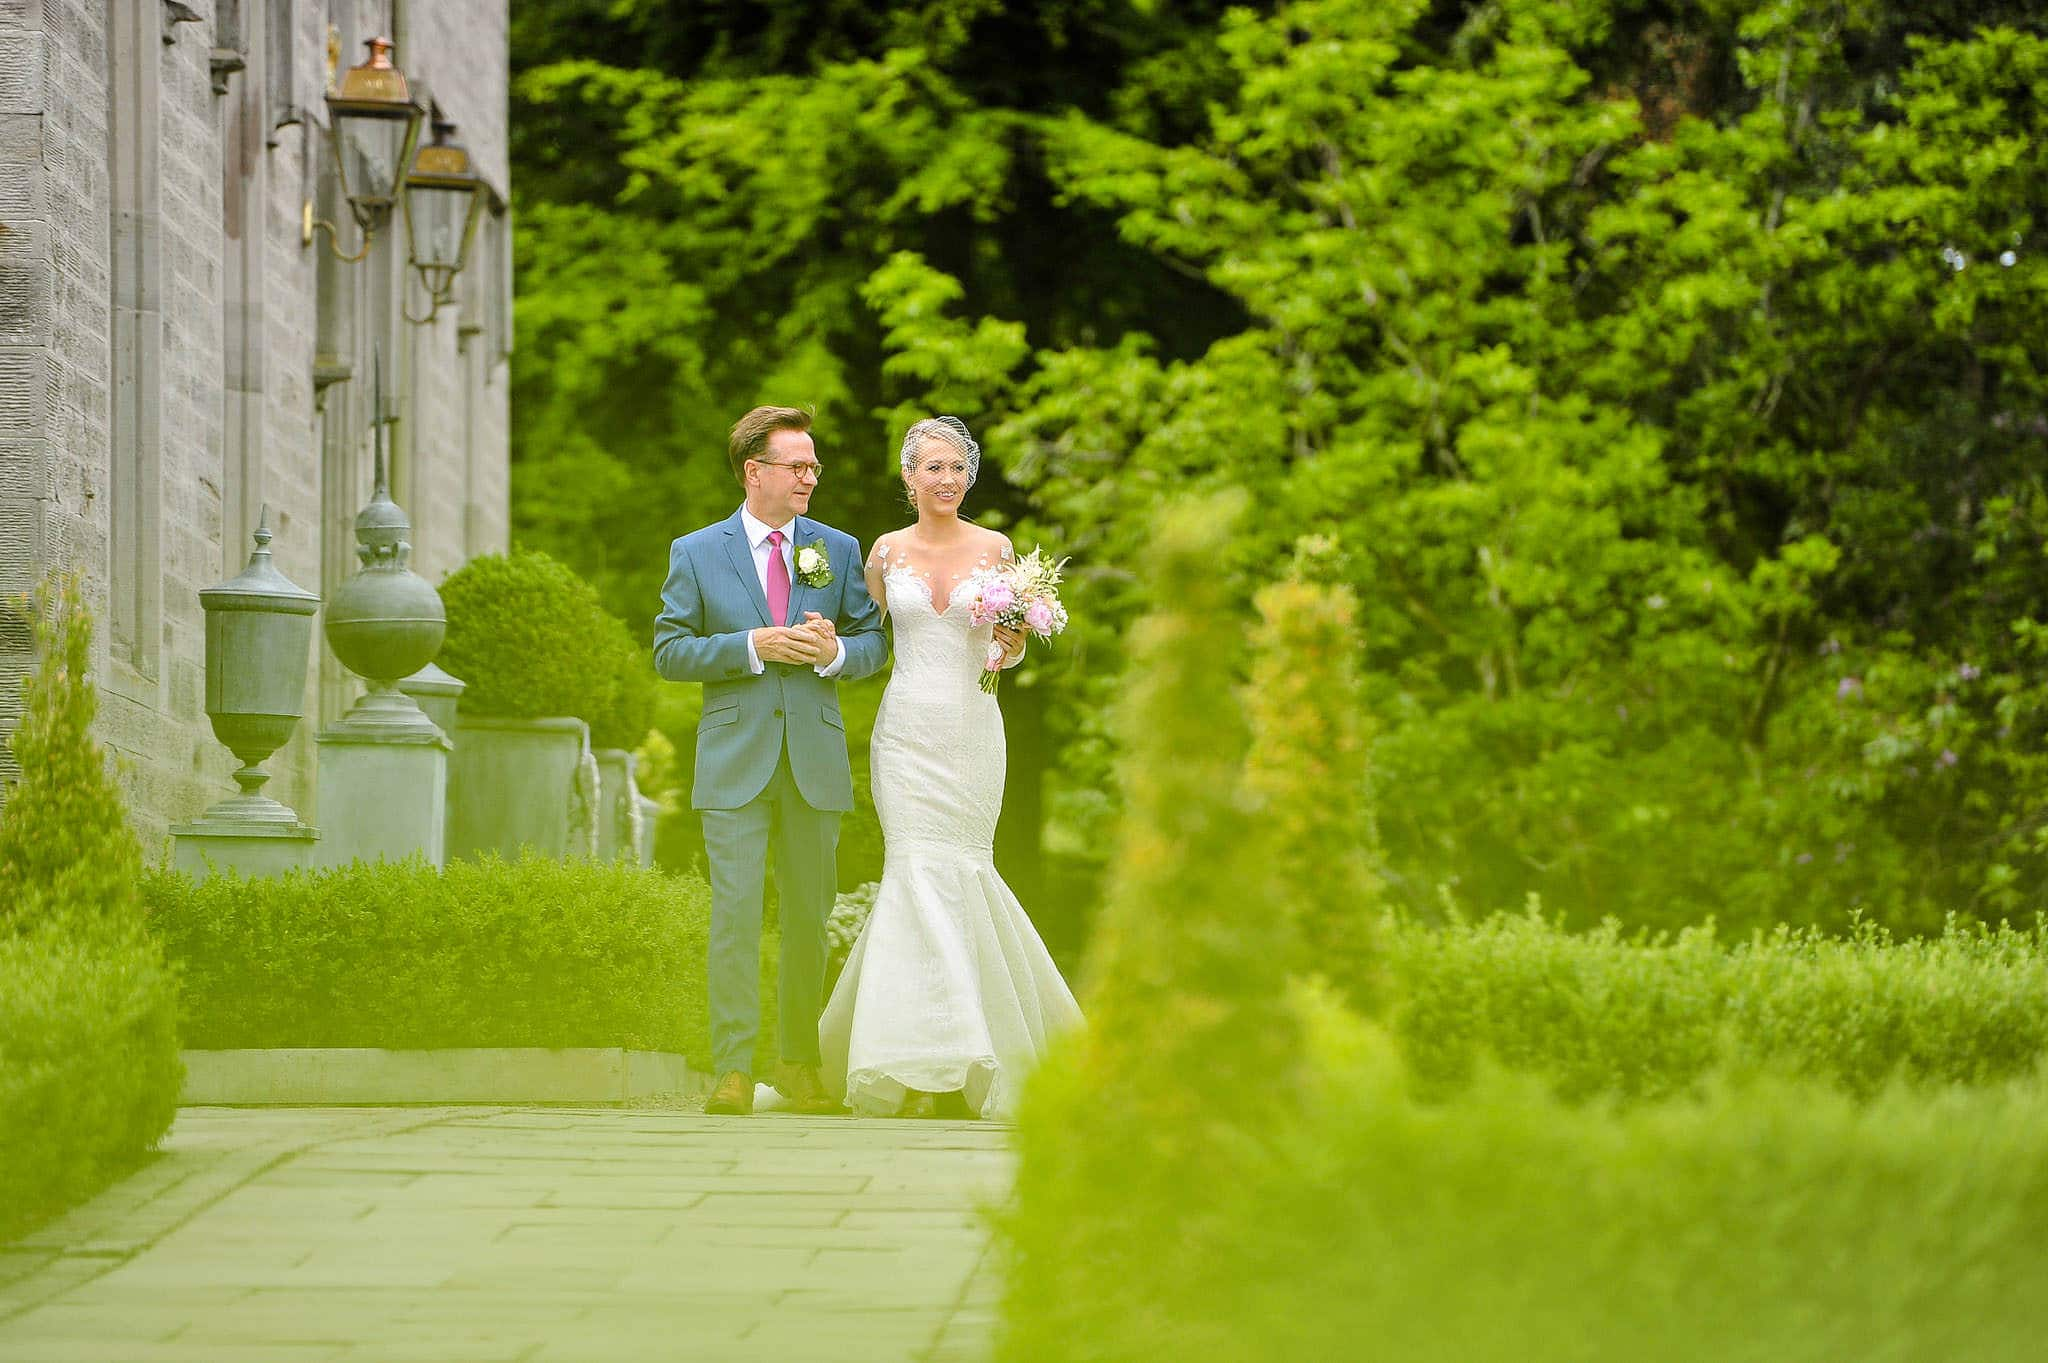 wedding photography midlands 28 - Midlands wedding photography - 2015 Review